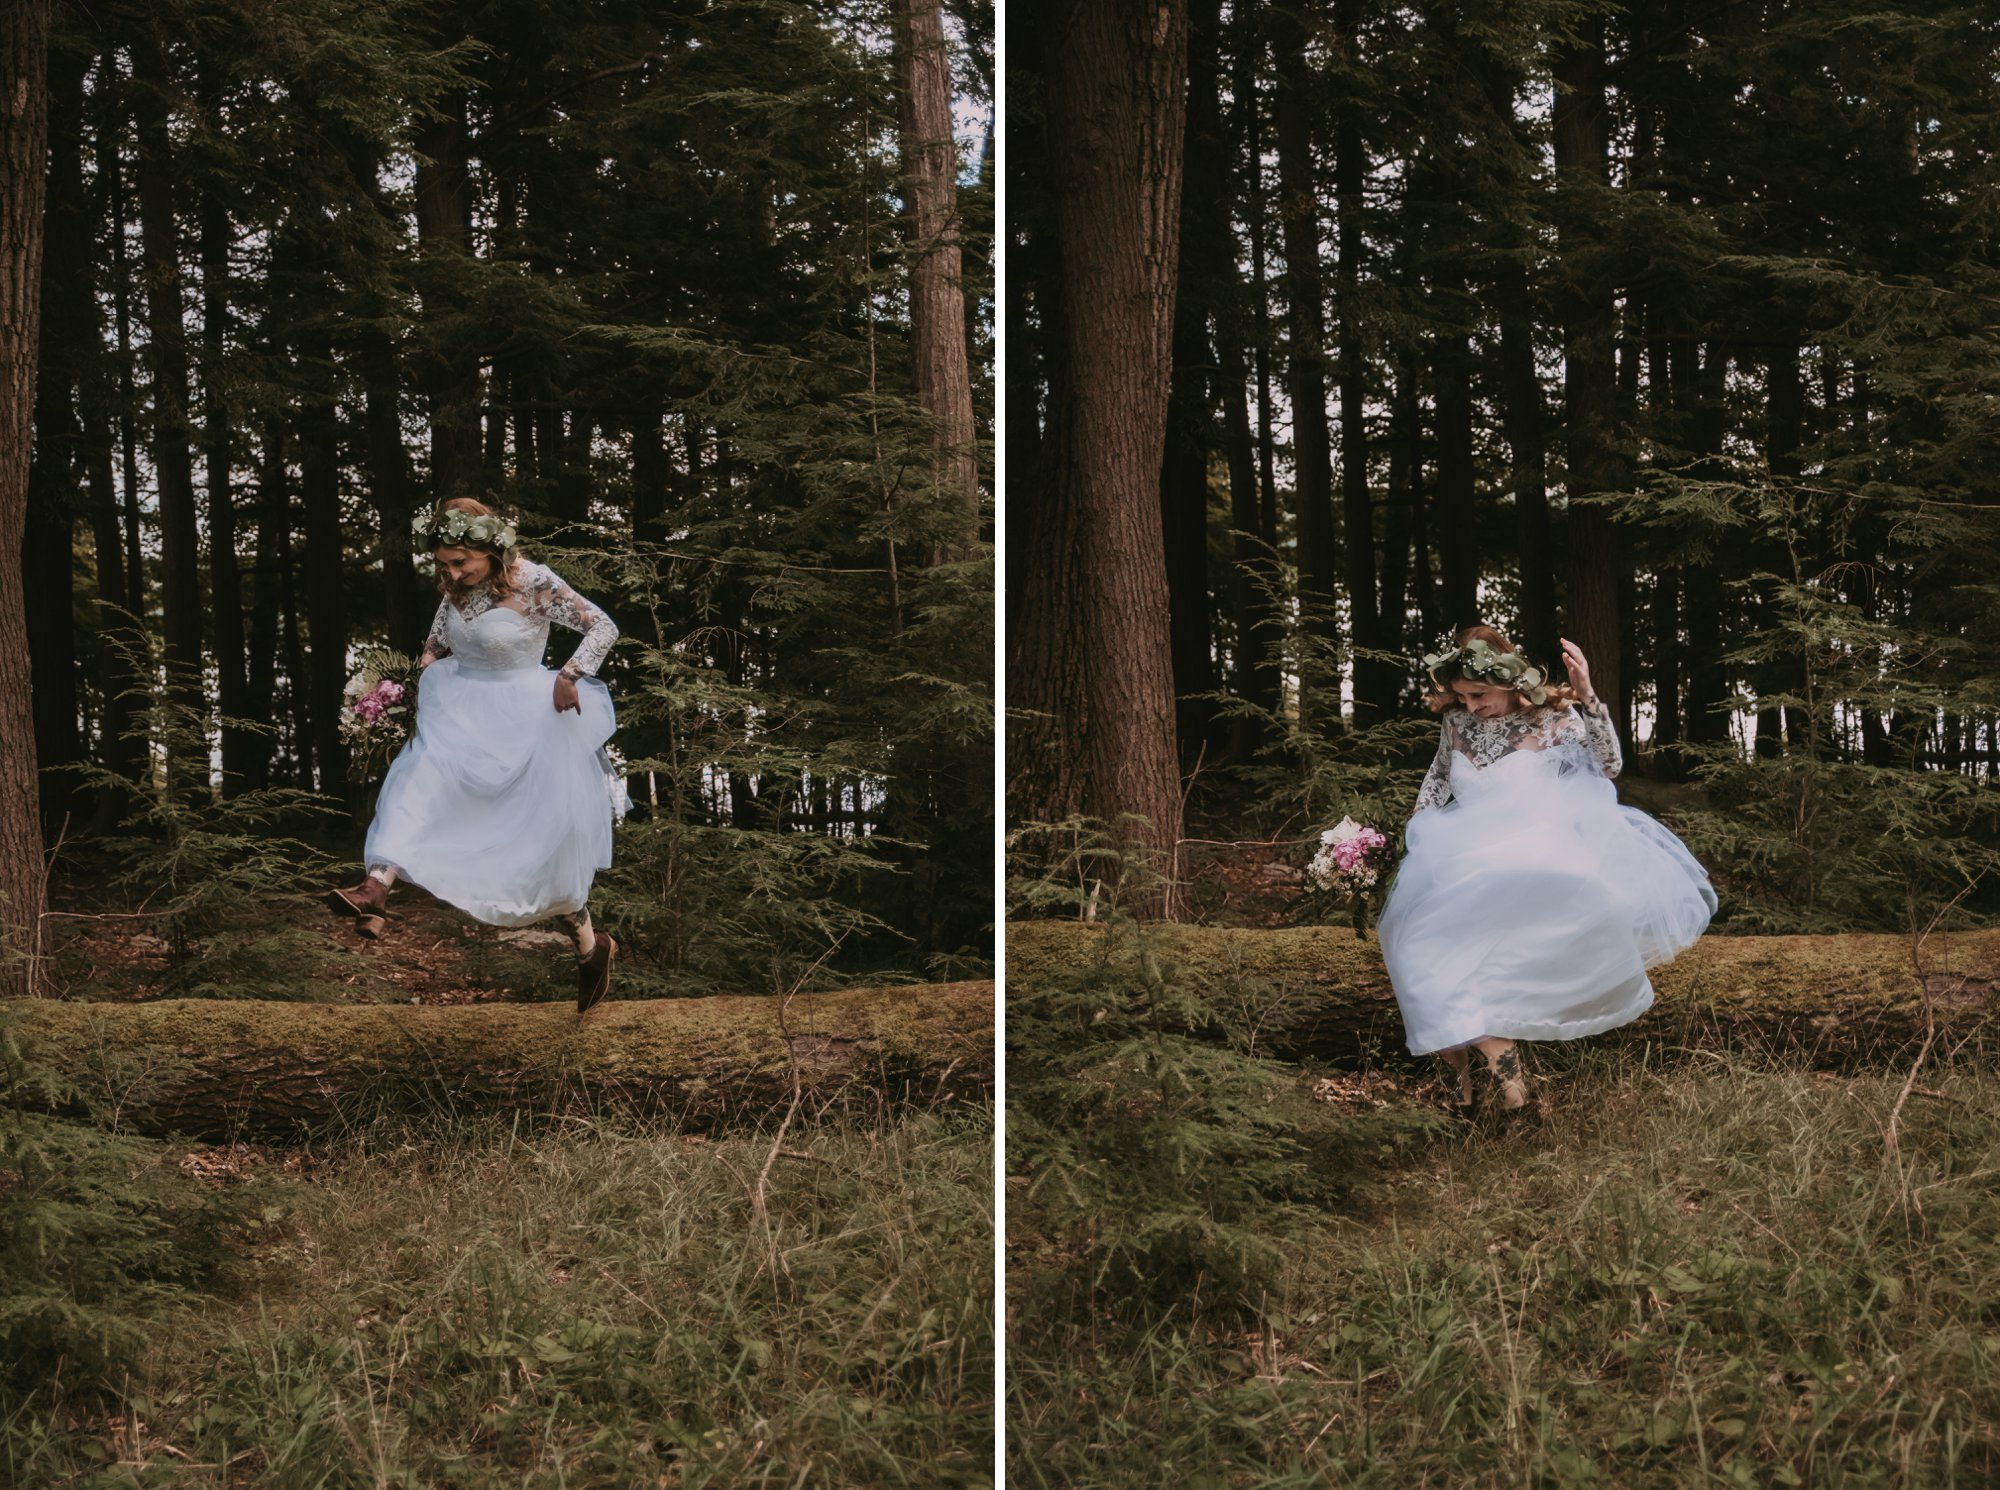 Rustic Intimate Vegan Forest Wedding with Handmade Dress. Bride Jumping off a Log